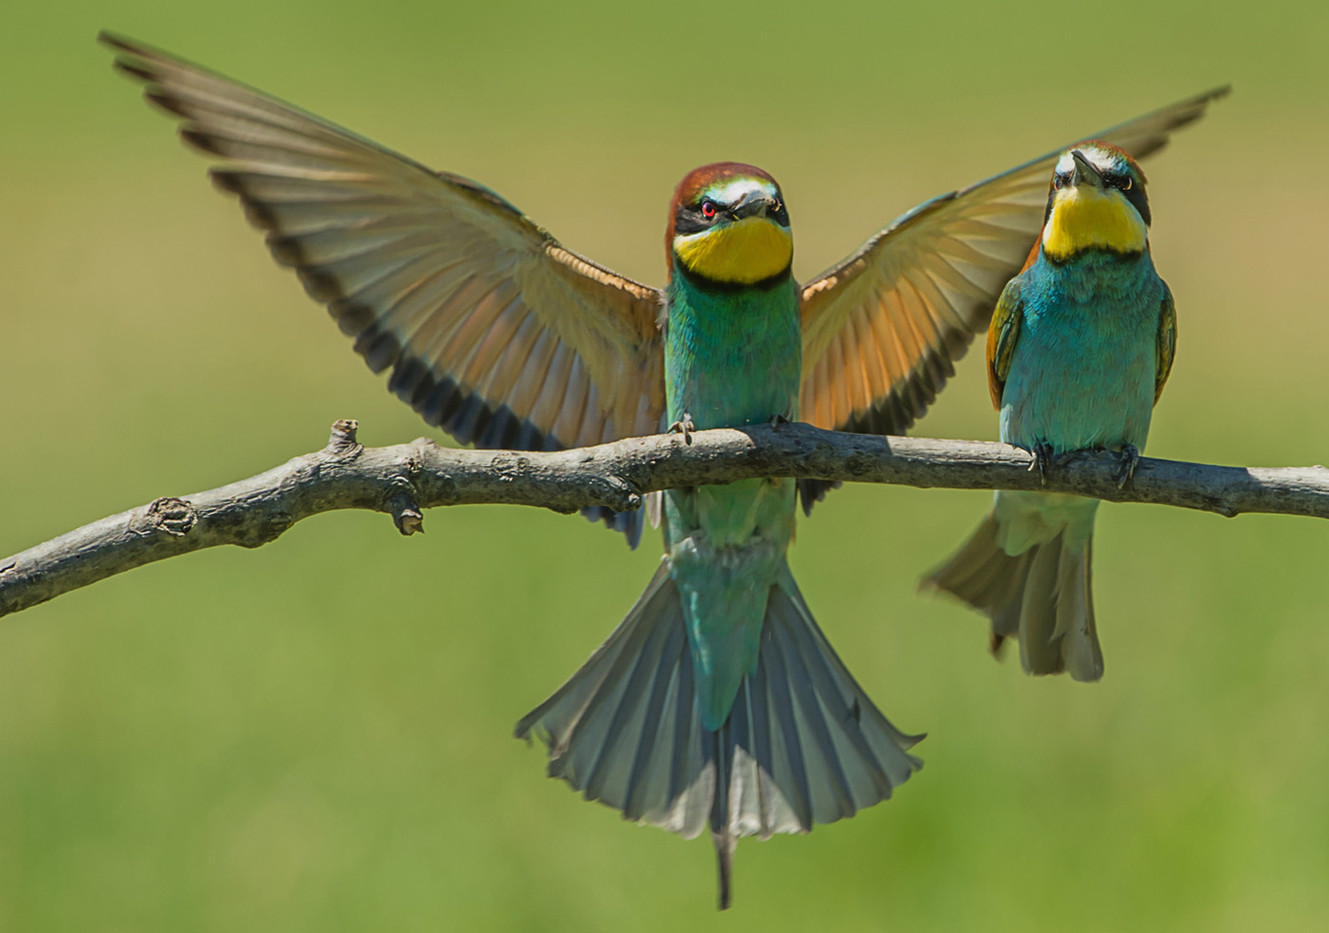 GROUP 1 19 BEE-EATER DISPLAY by Len Kemp